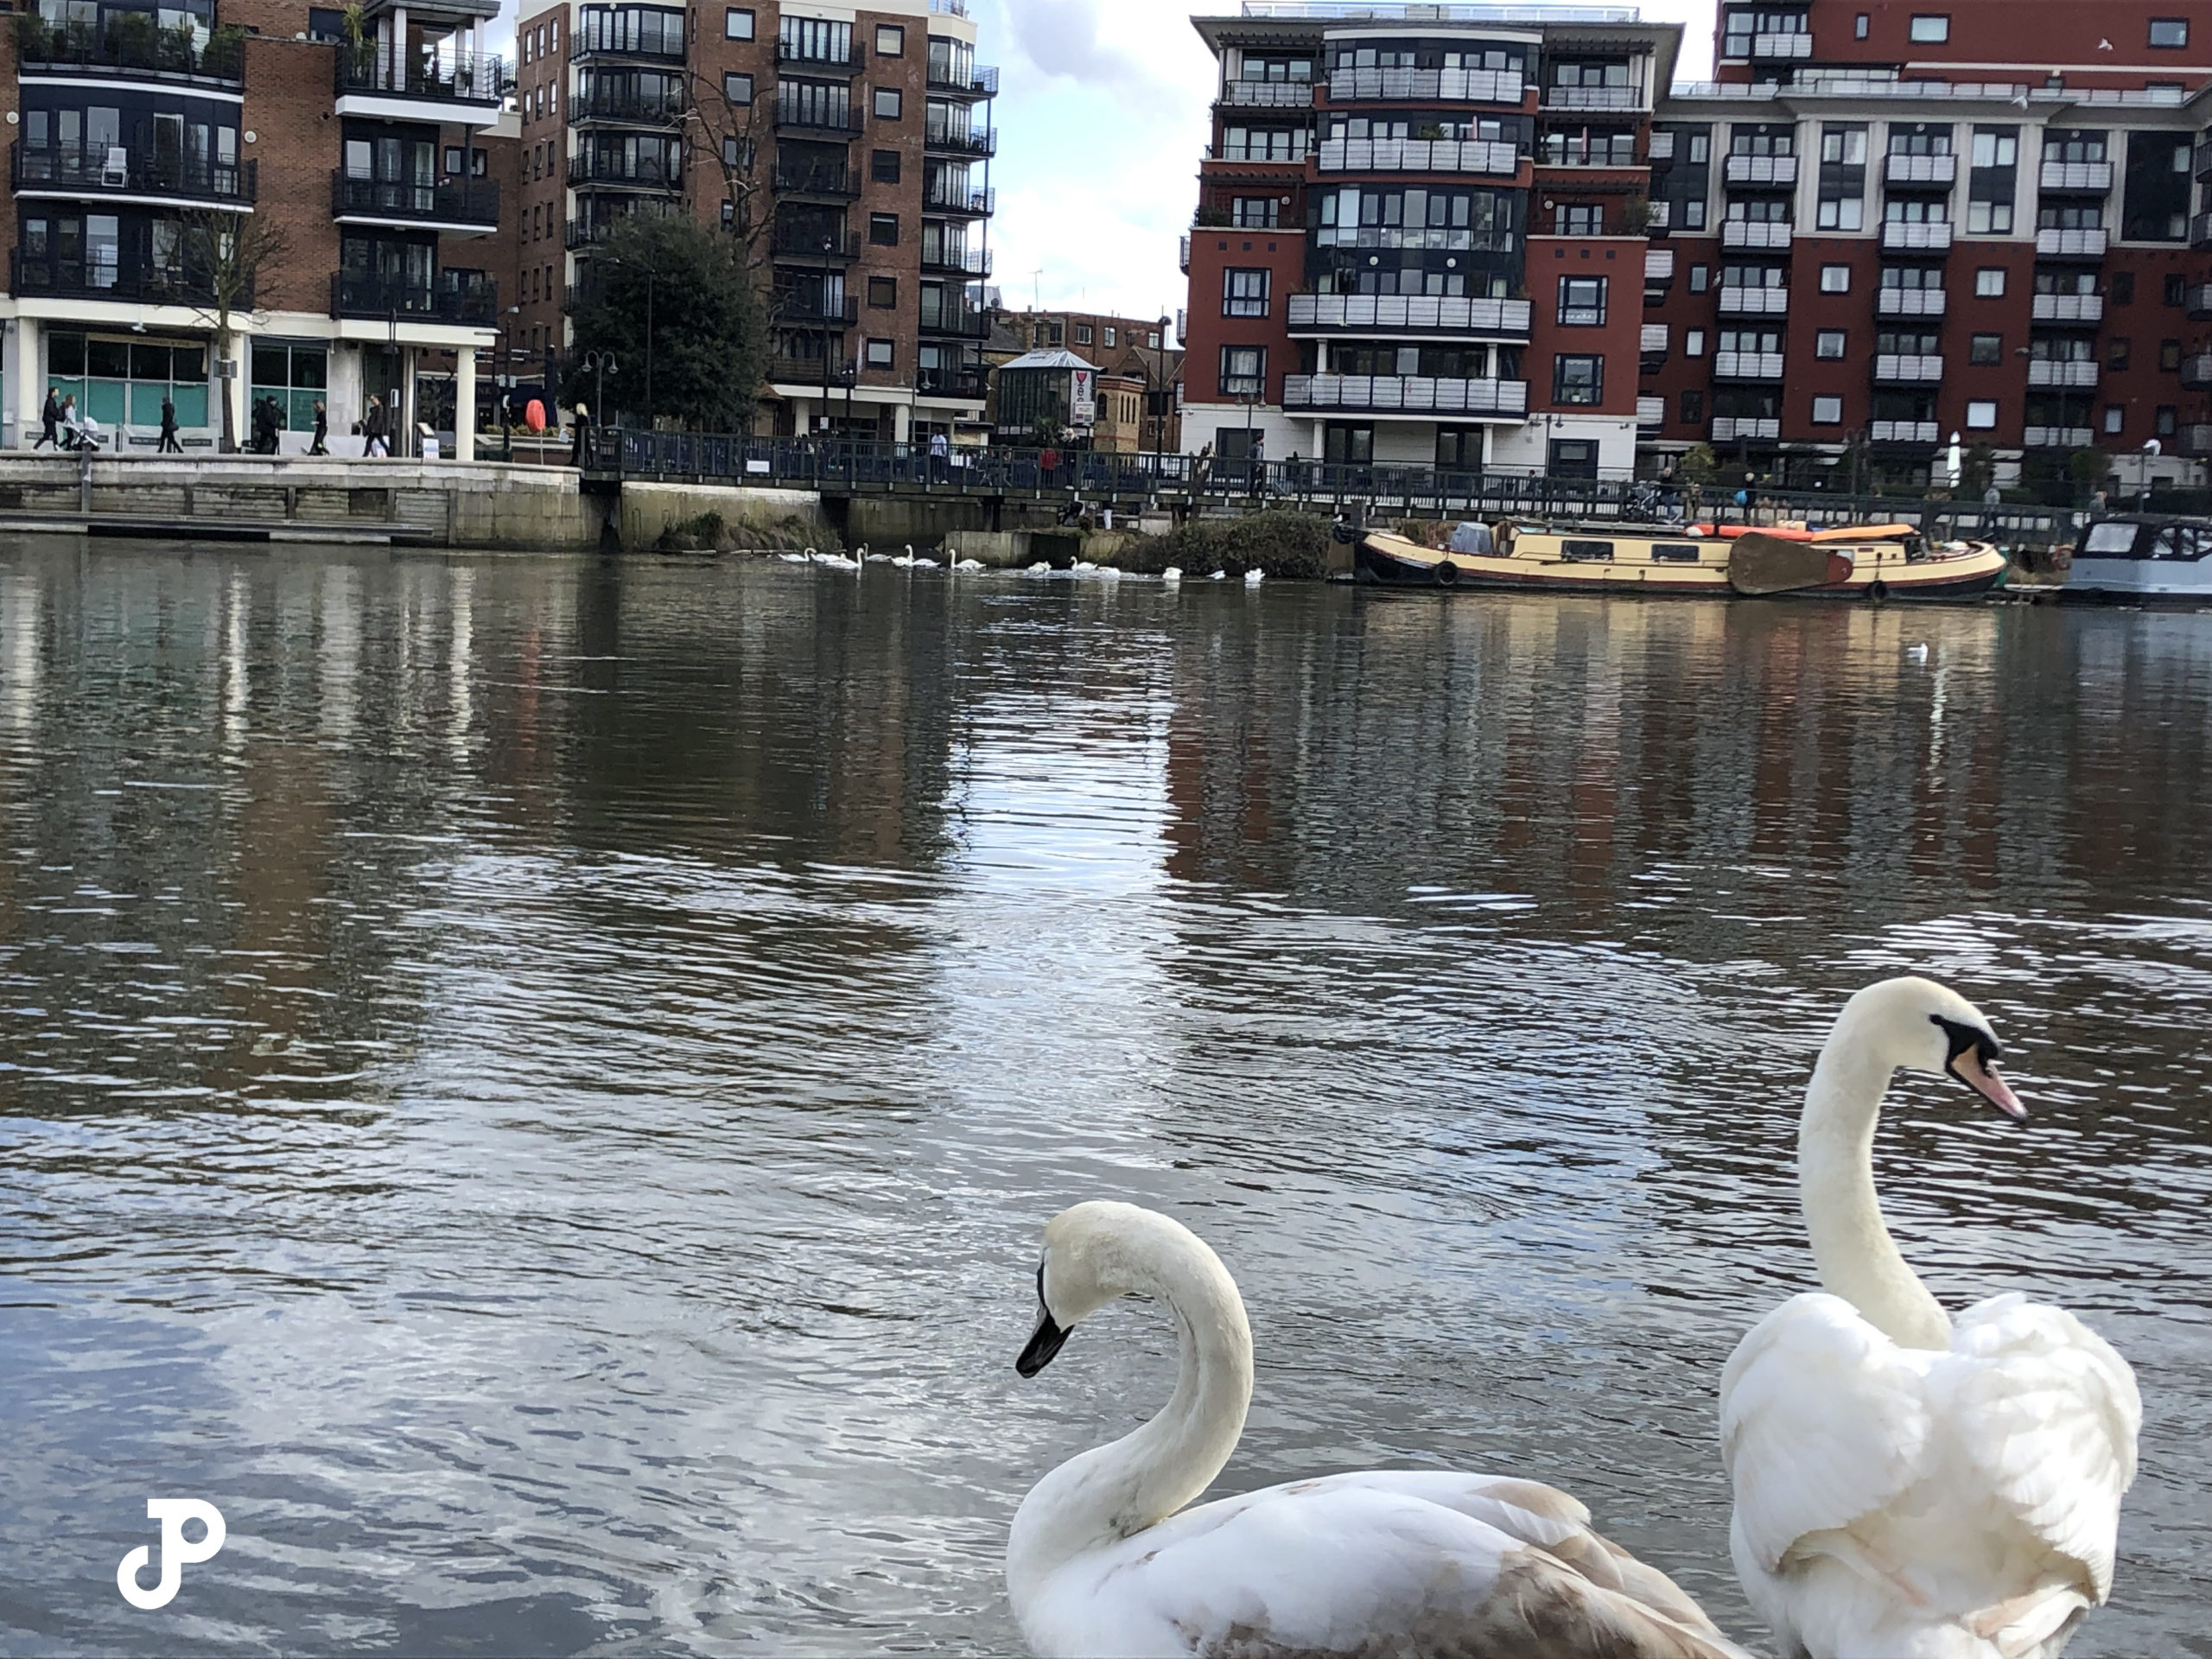 two swans standing before the River Thames with the opposite bank visible in the distance